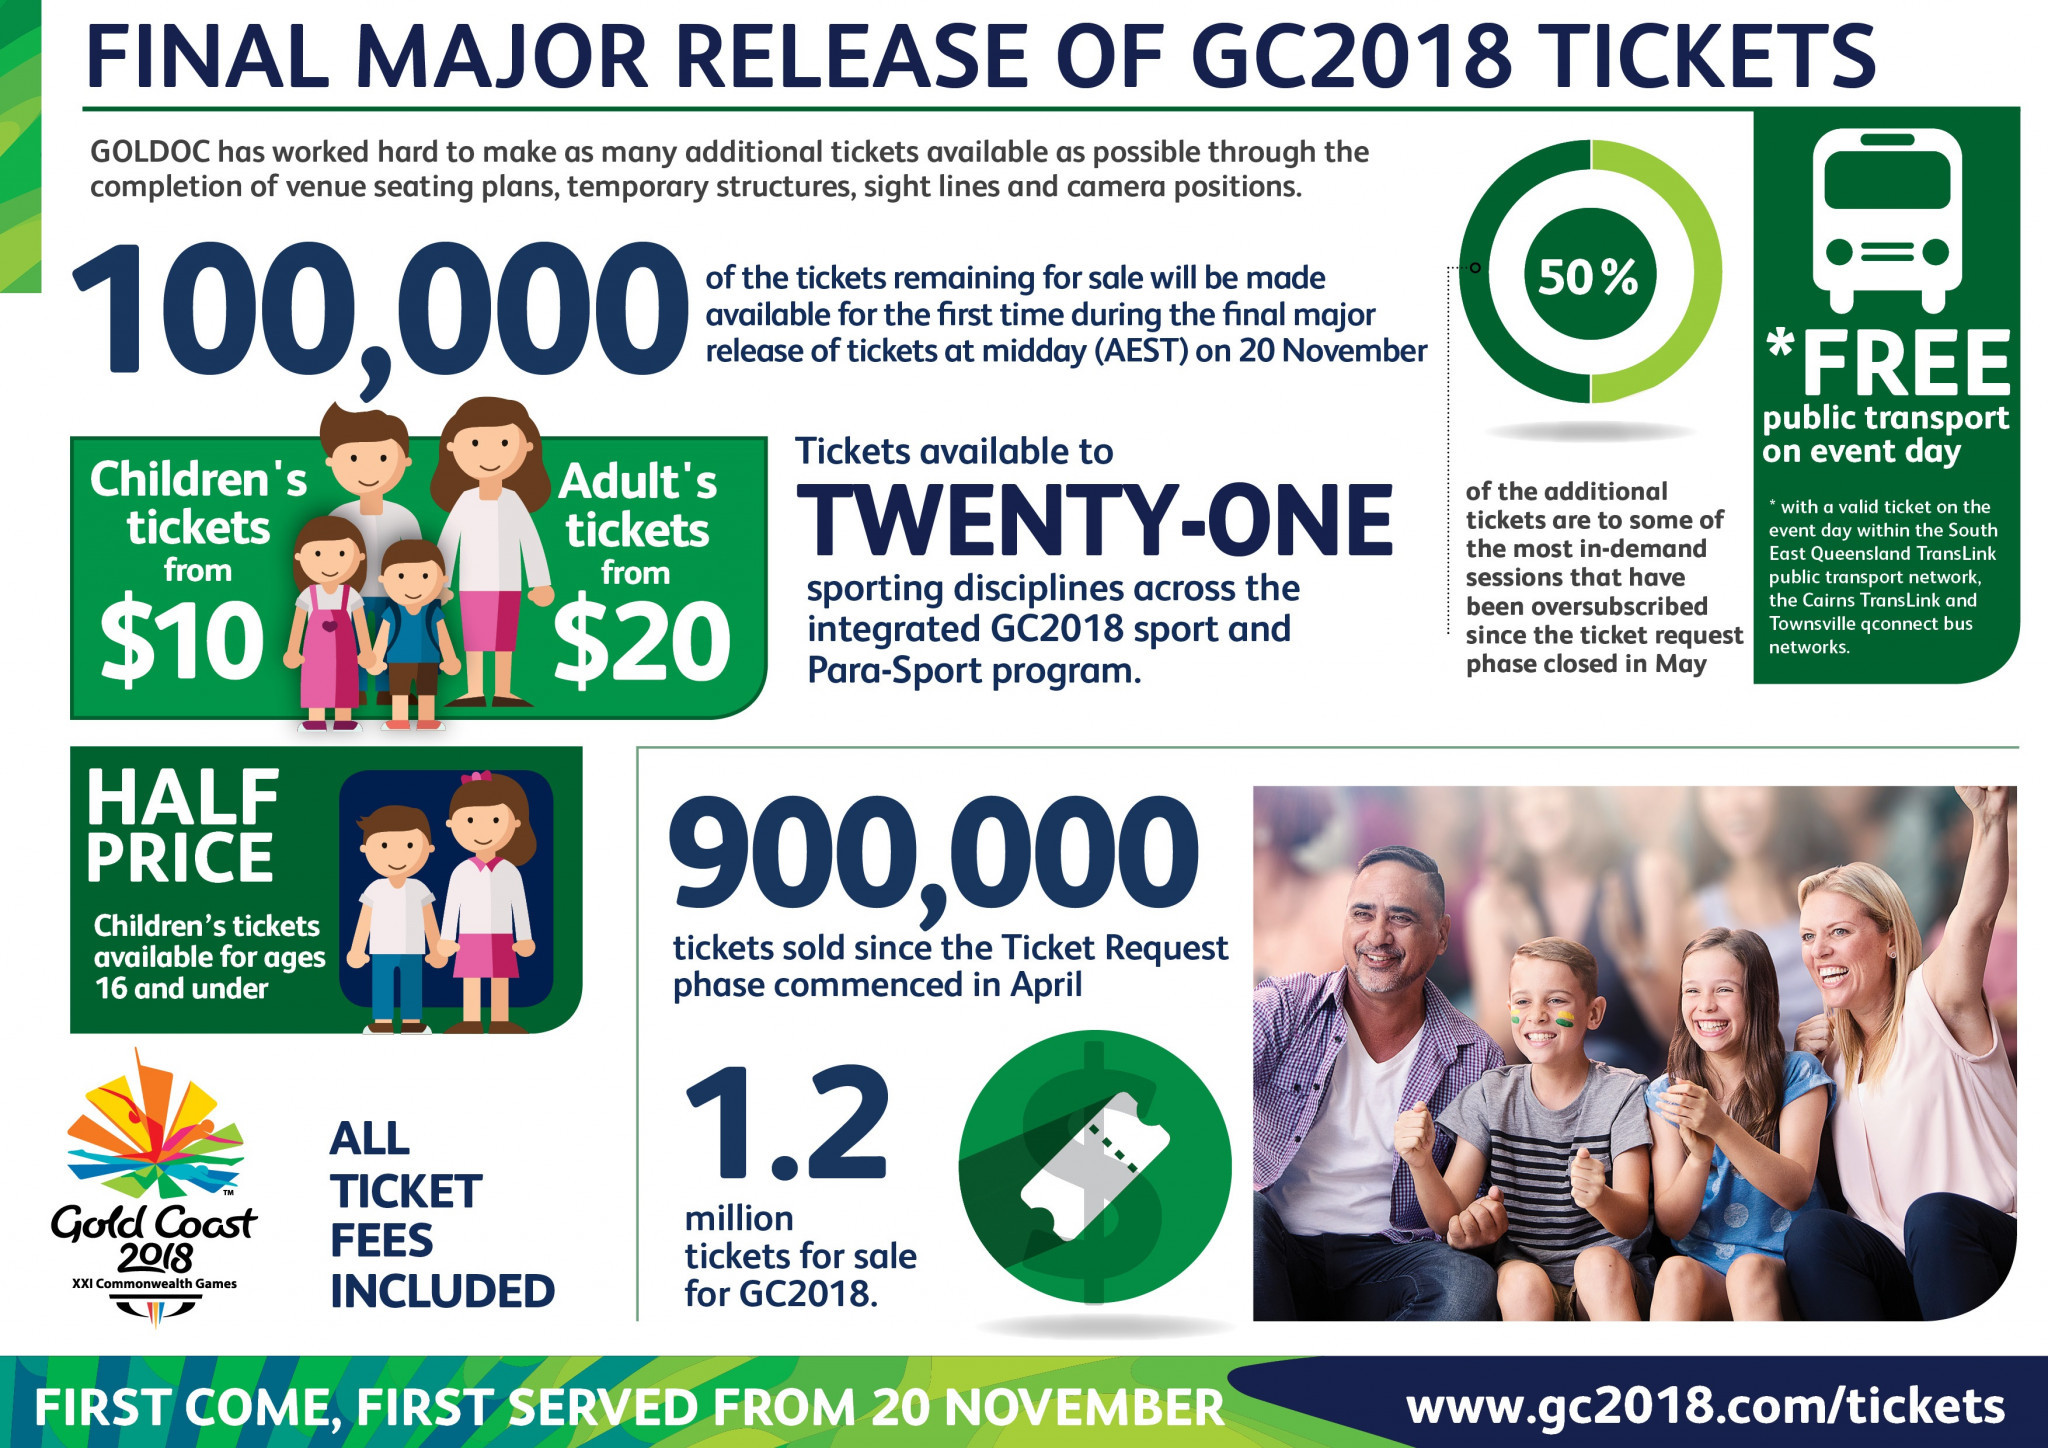 Gold Coast 2018 set for final major release of tickets